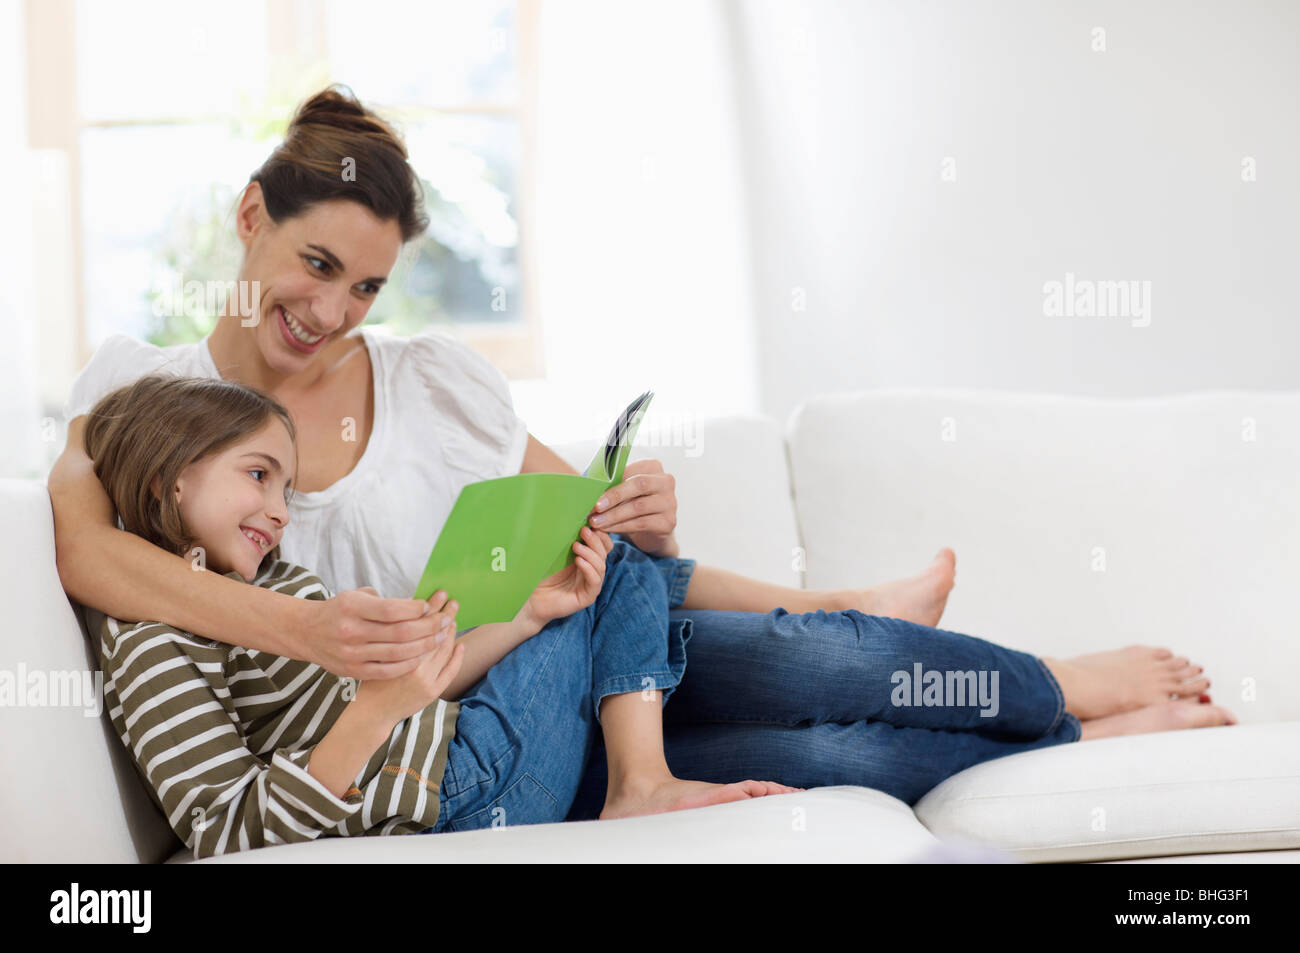 young girls on their leisure day - Stock Image